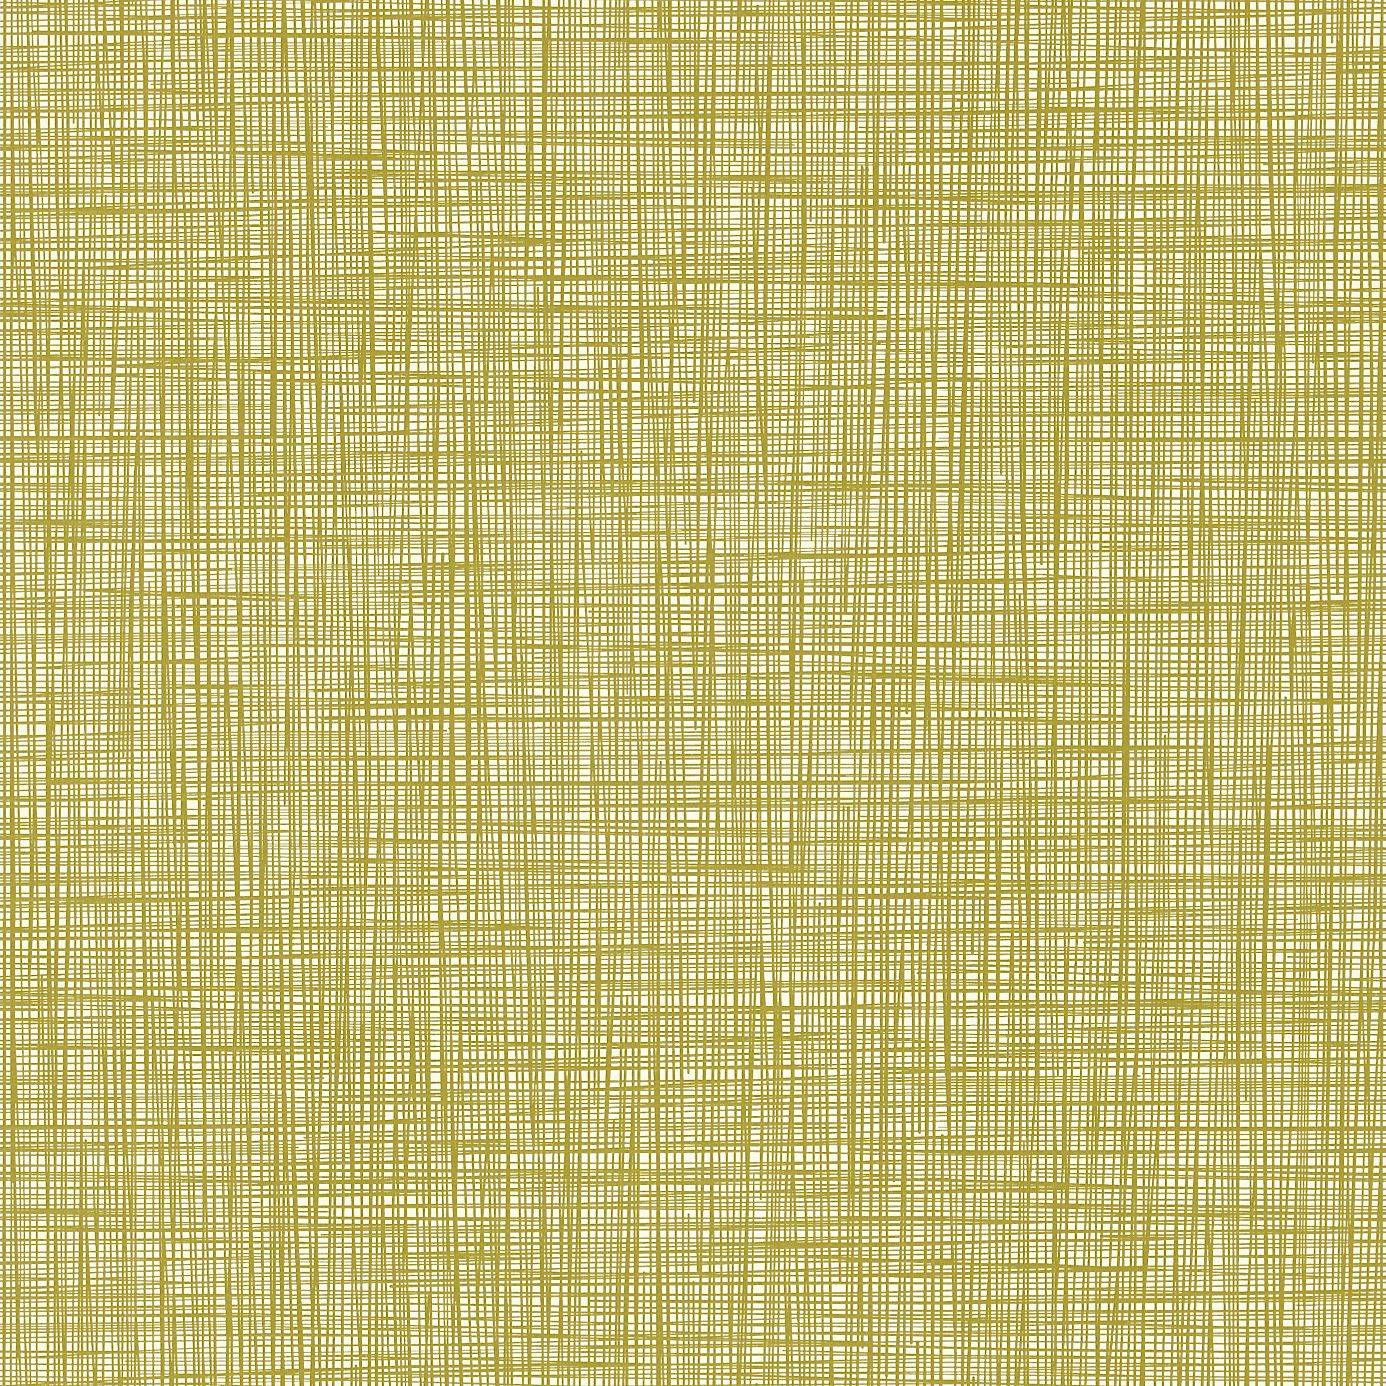 scribble wallpaper olive 110430 harlequin orla kiely wallpapers collection. Black Bedroom Furniture Sets. Home Design Ideas